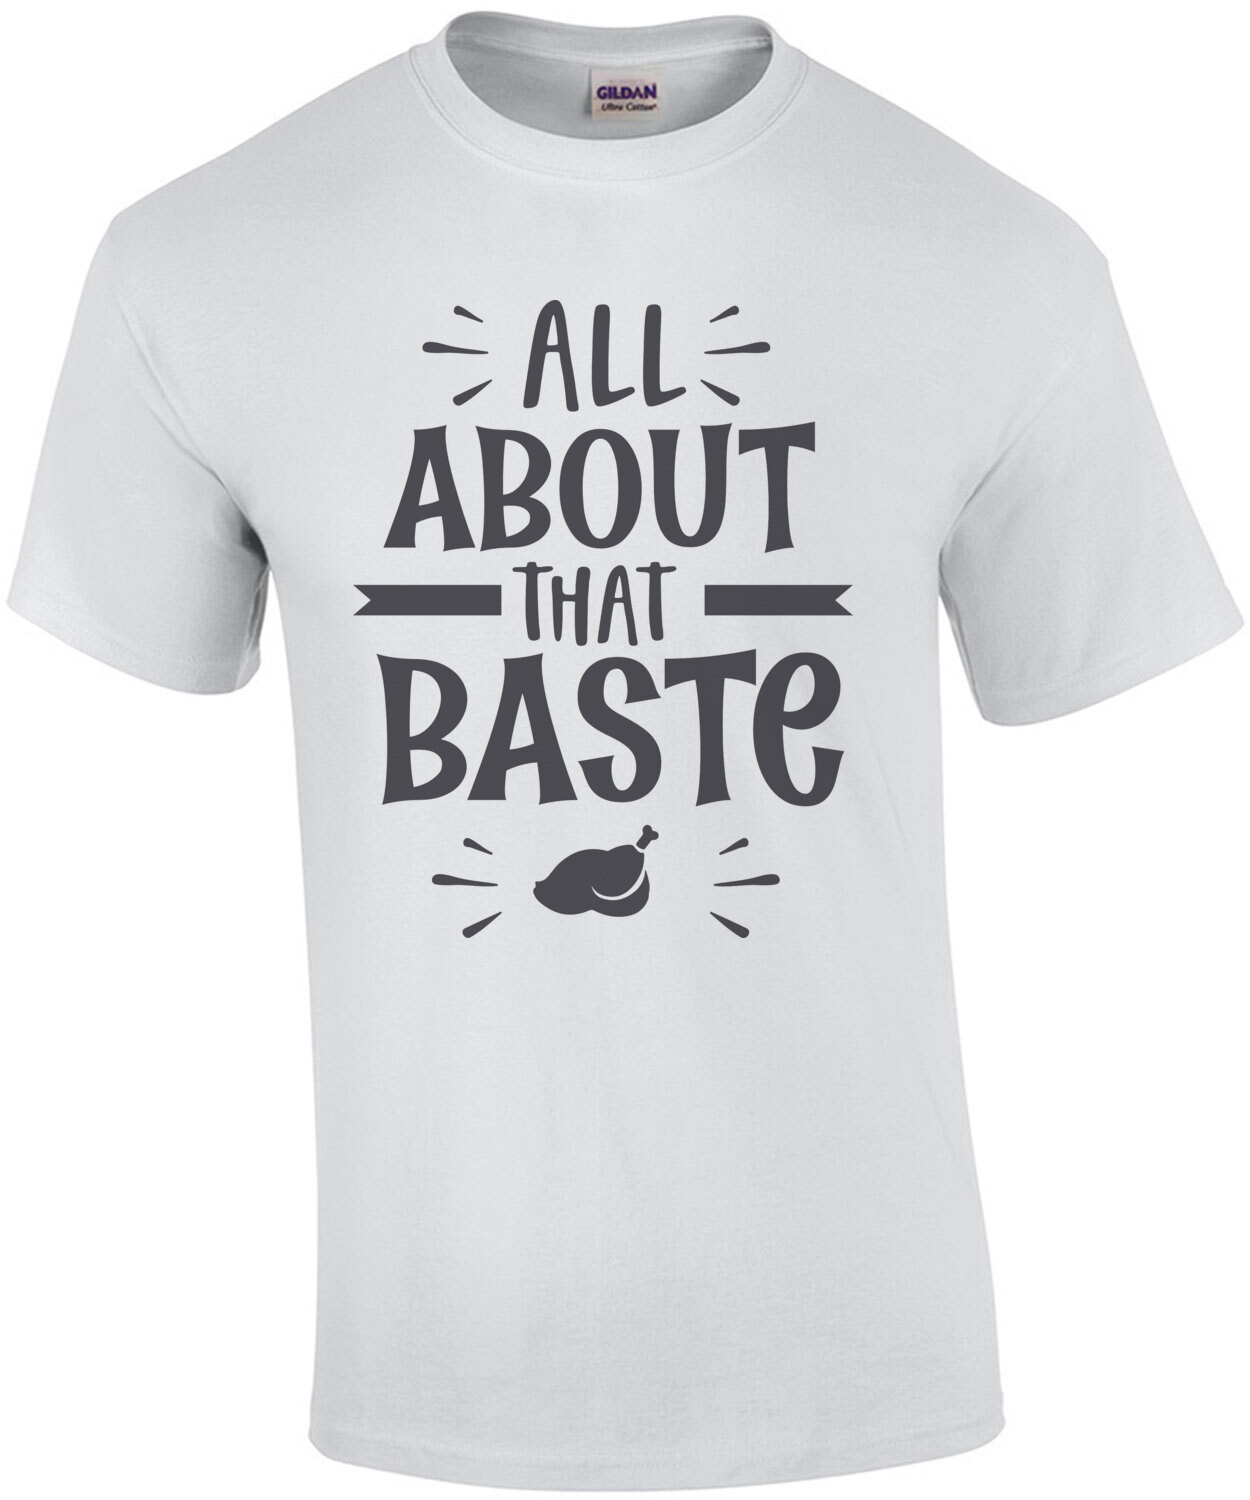 All About That Baste - Thanksgiving T-Shirt